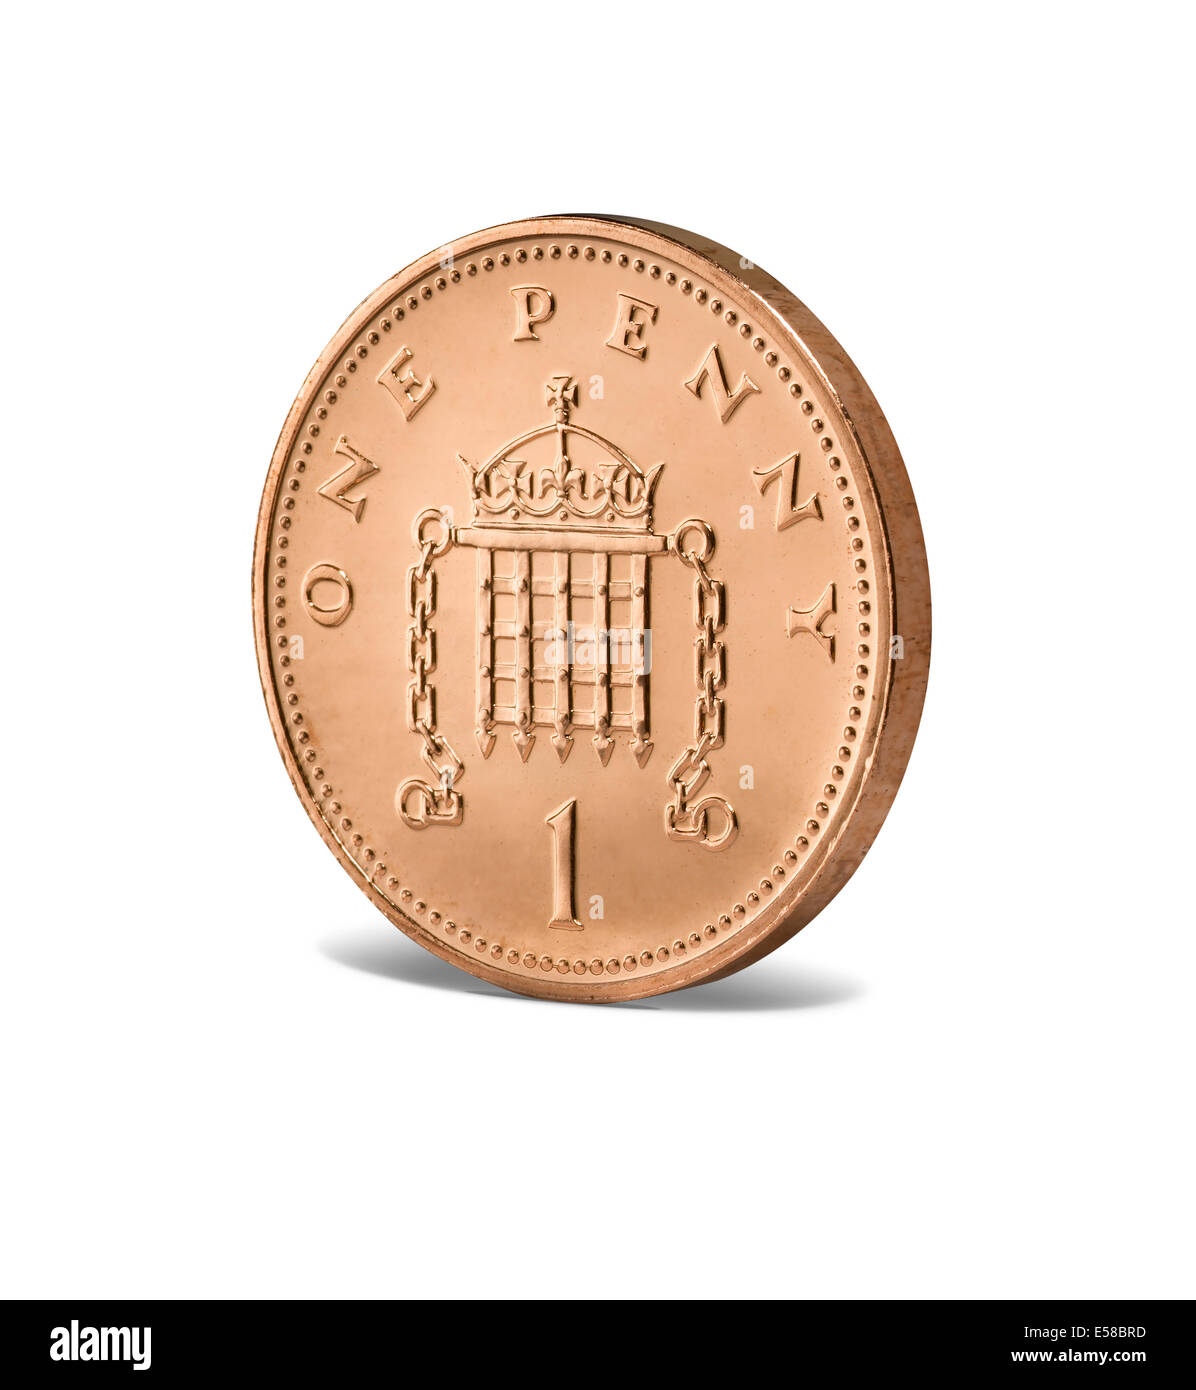 One Pence Stock Photos Amp One Pence Stock Images Alamy